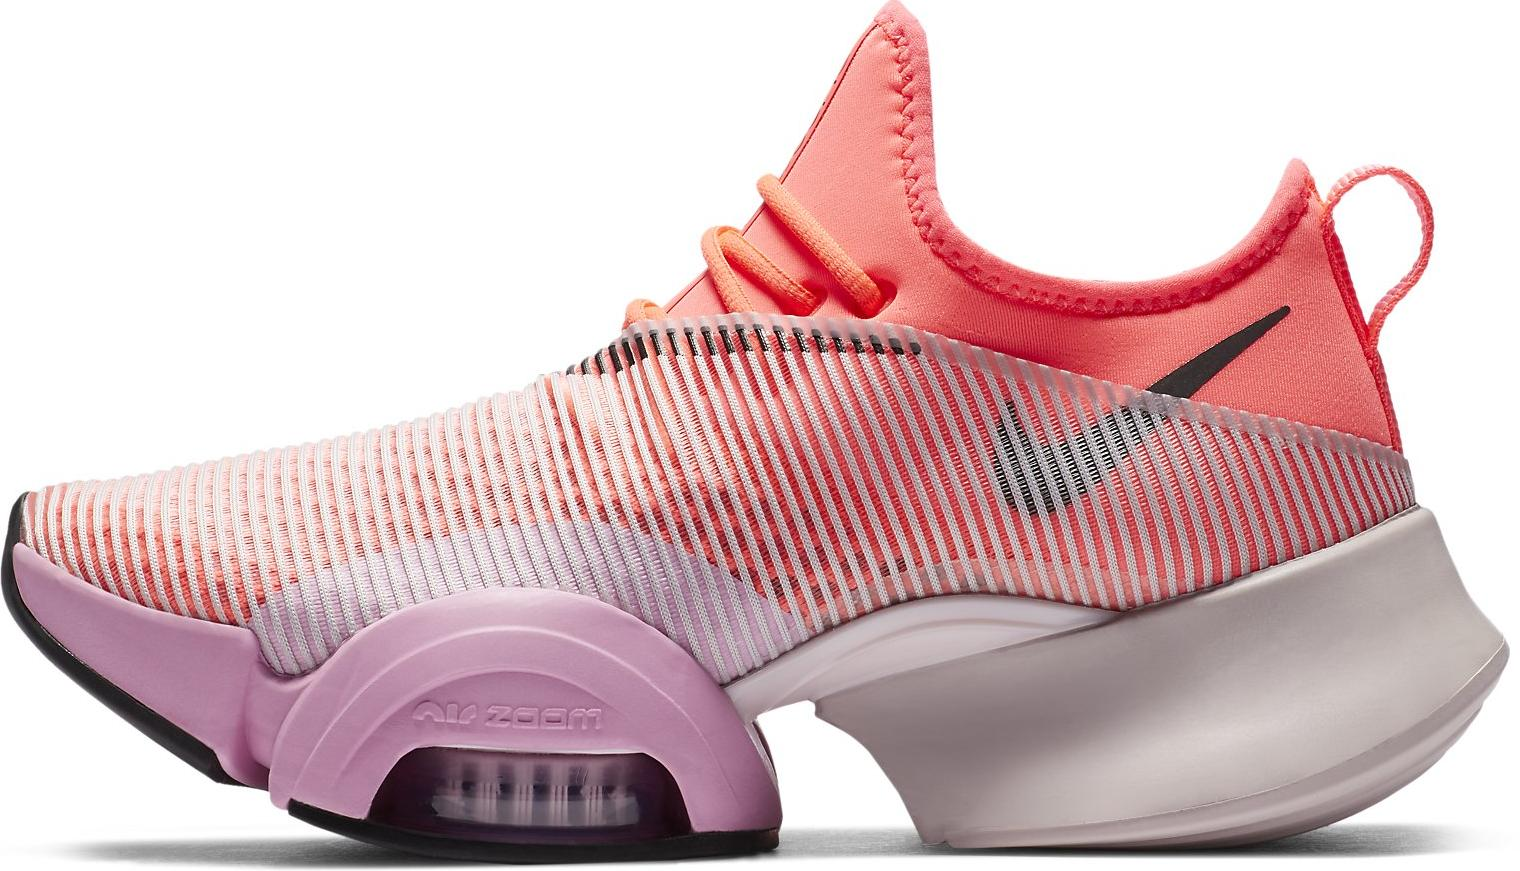 Nike WMNS AIR ZOOM SUPERREP Fitness cipők